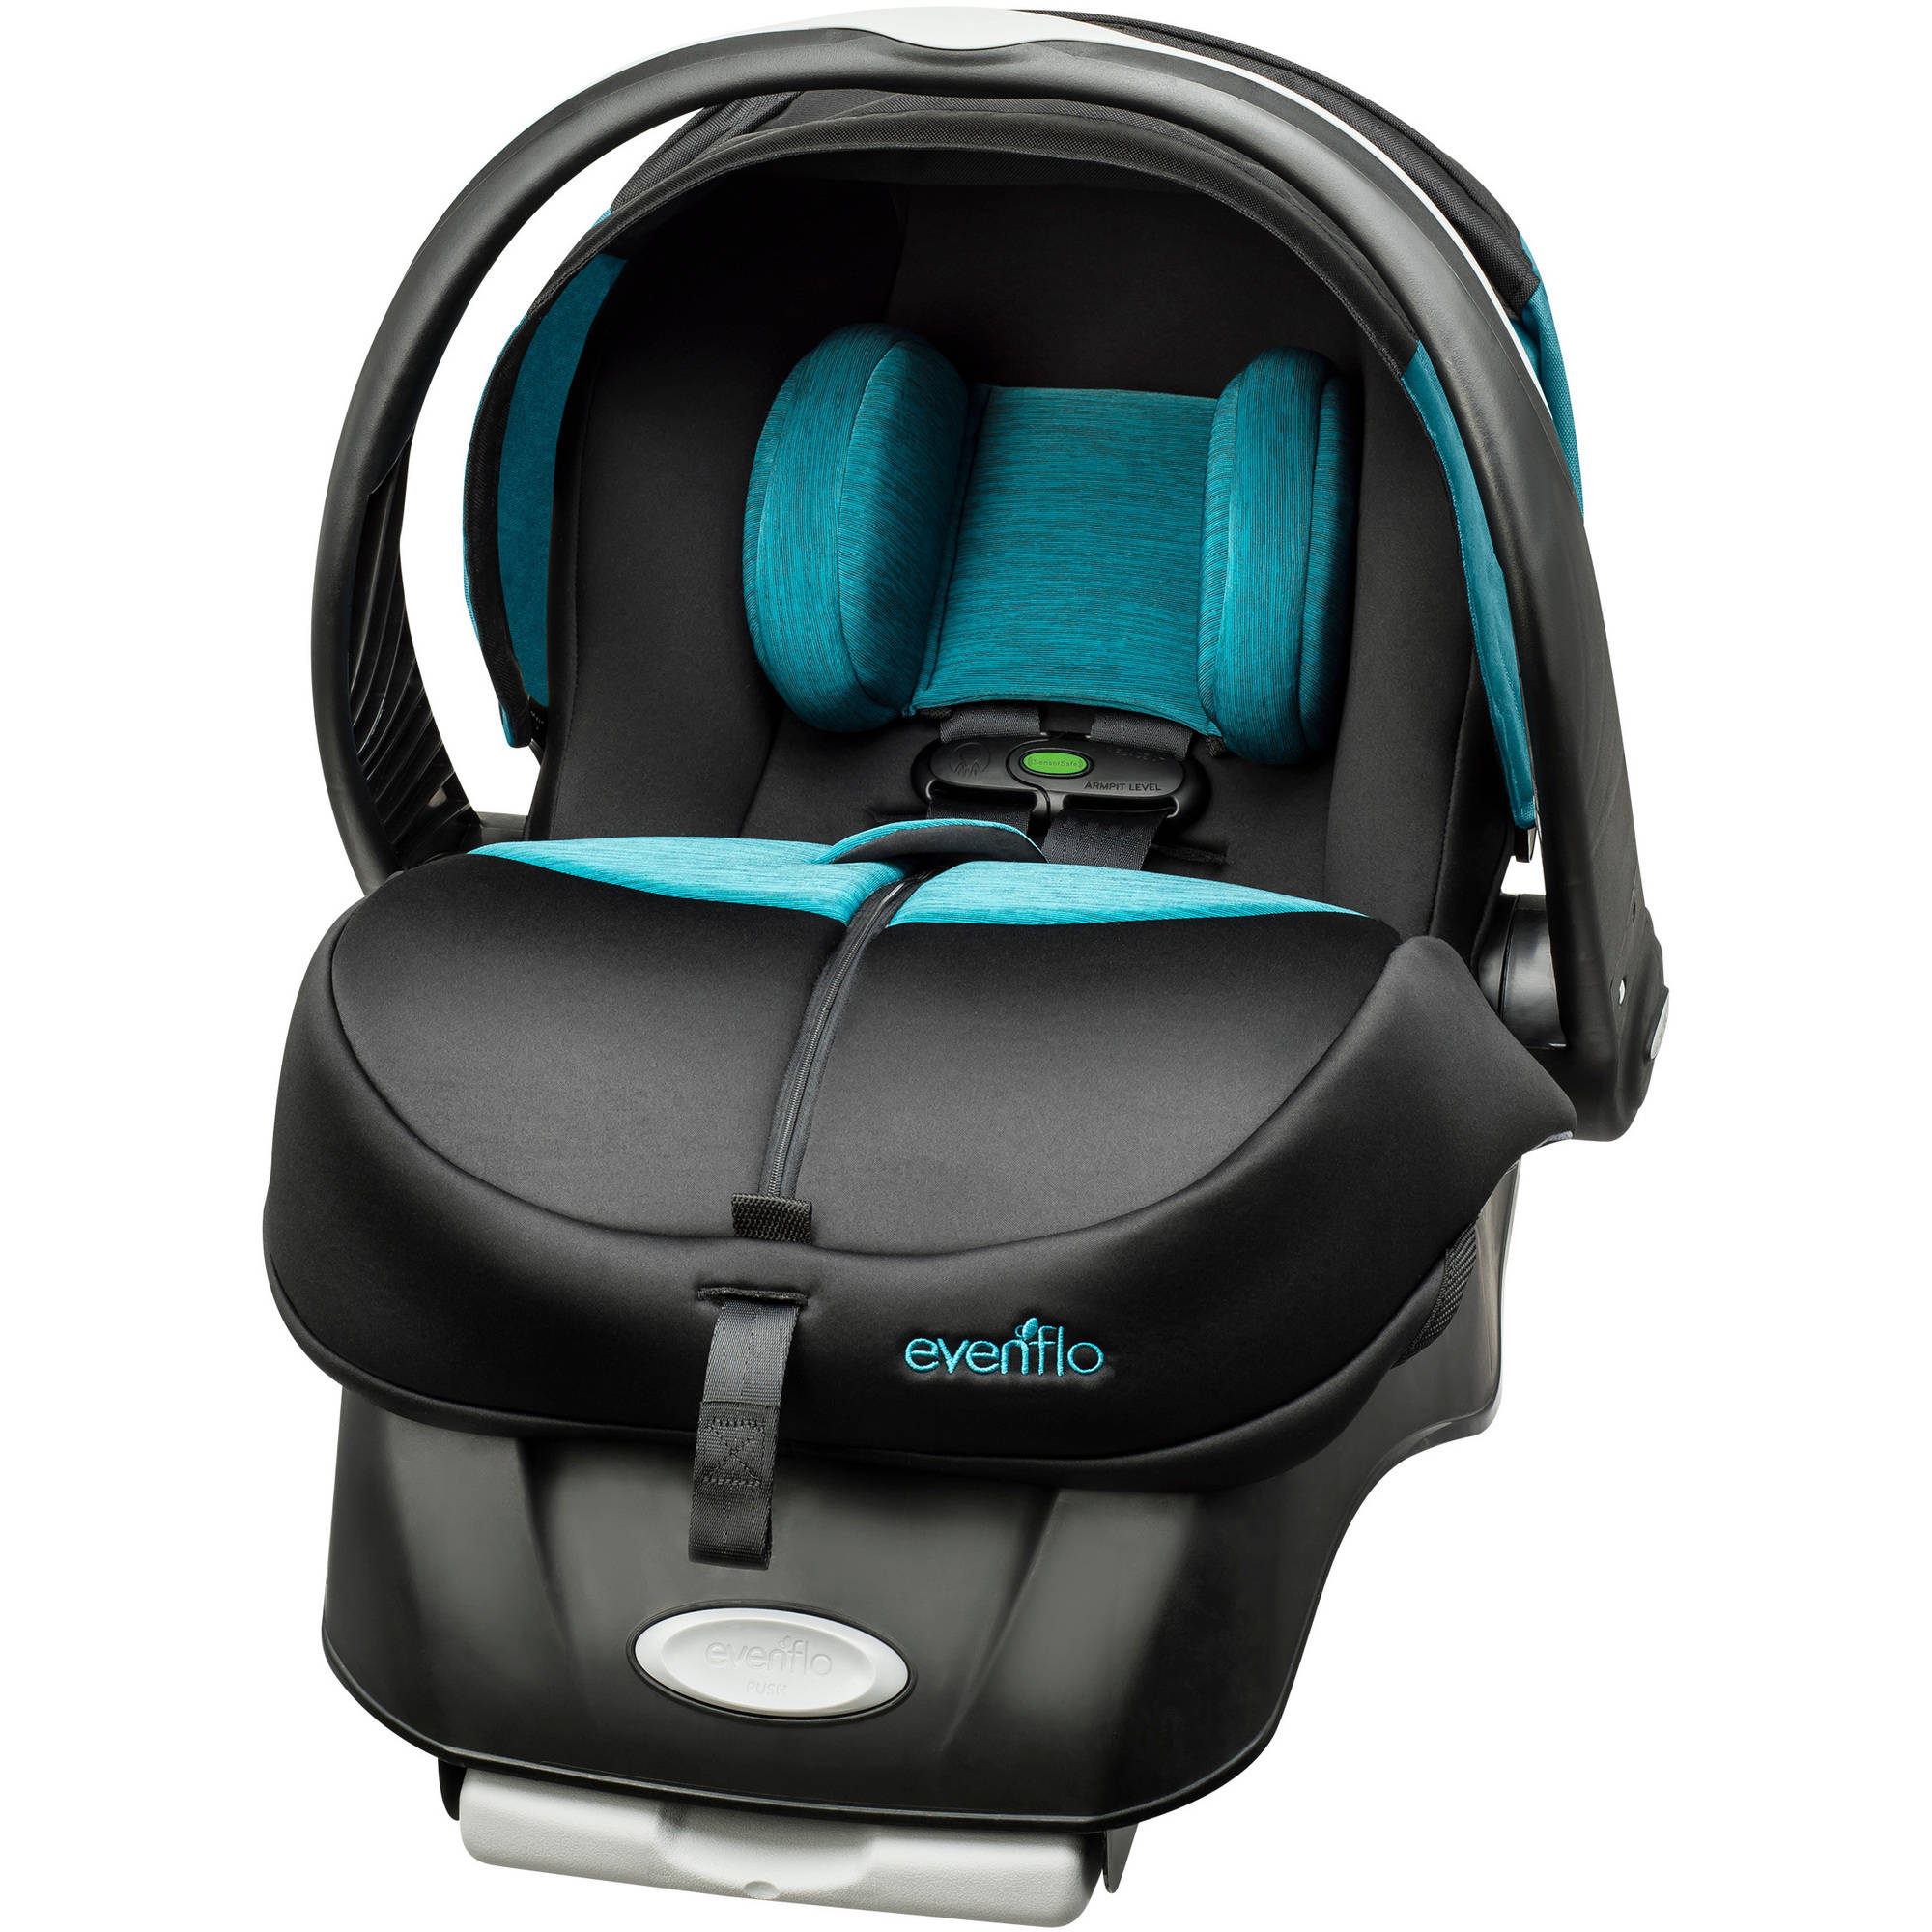 Evenflo Advanced Embrace DLX Infant Car Seat with SensorSafe, Largo